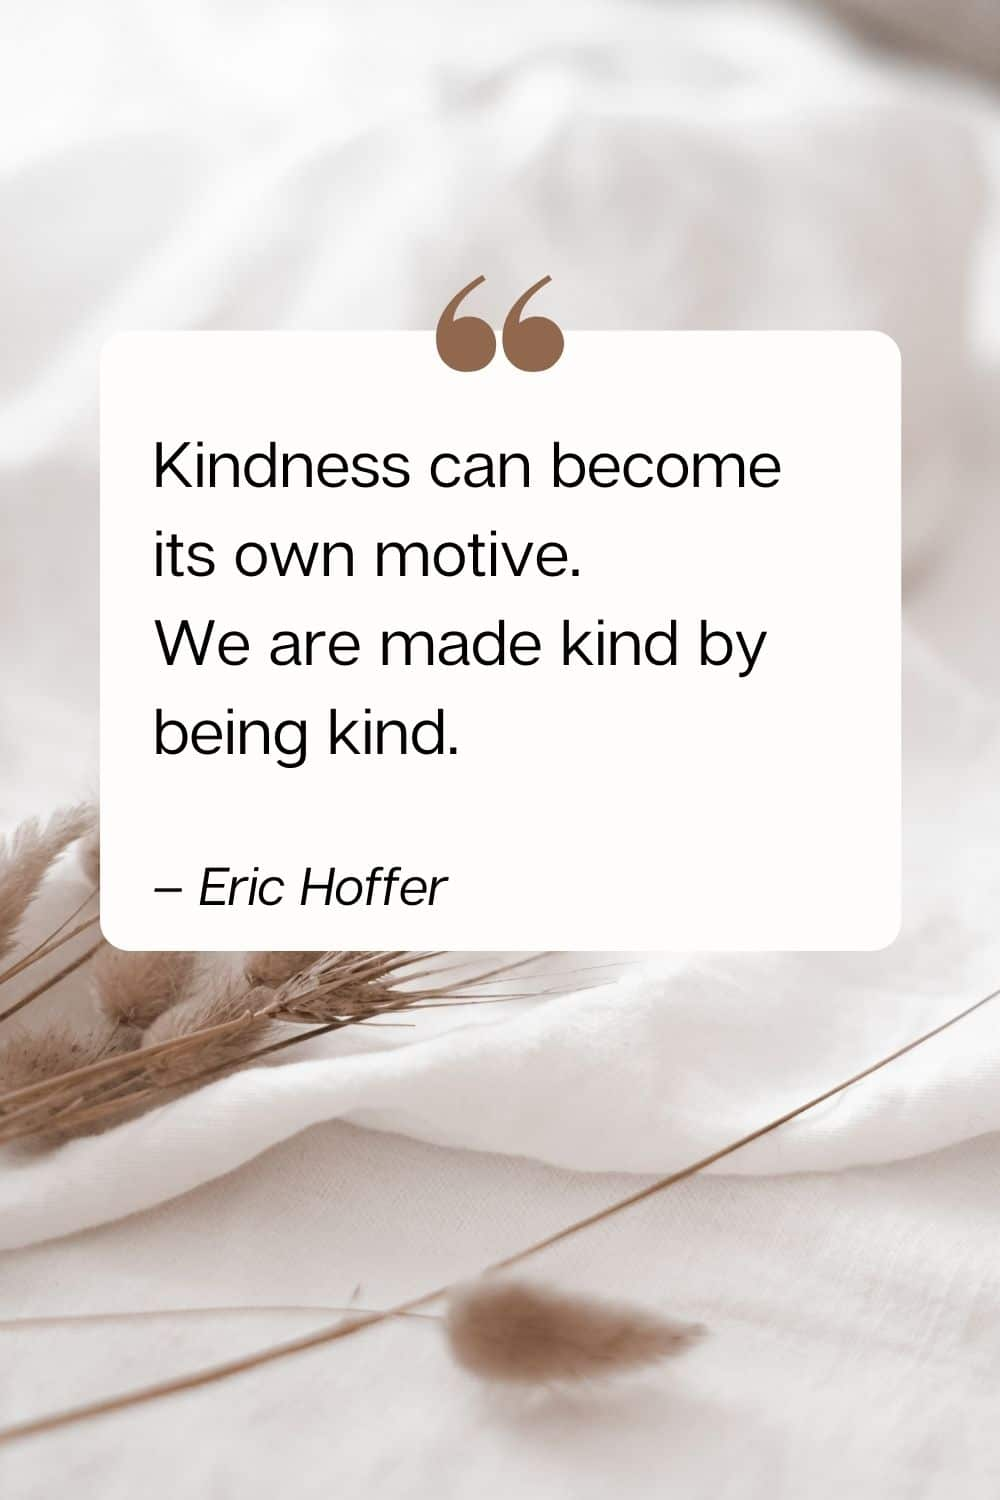 kindness quote - Kindness can become its own motive. We are made kind by being kind. – Eric Hoffer